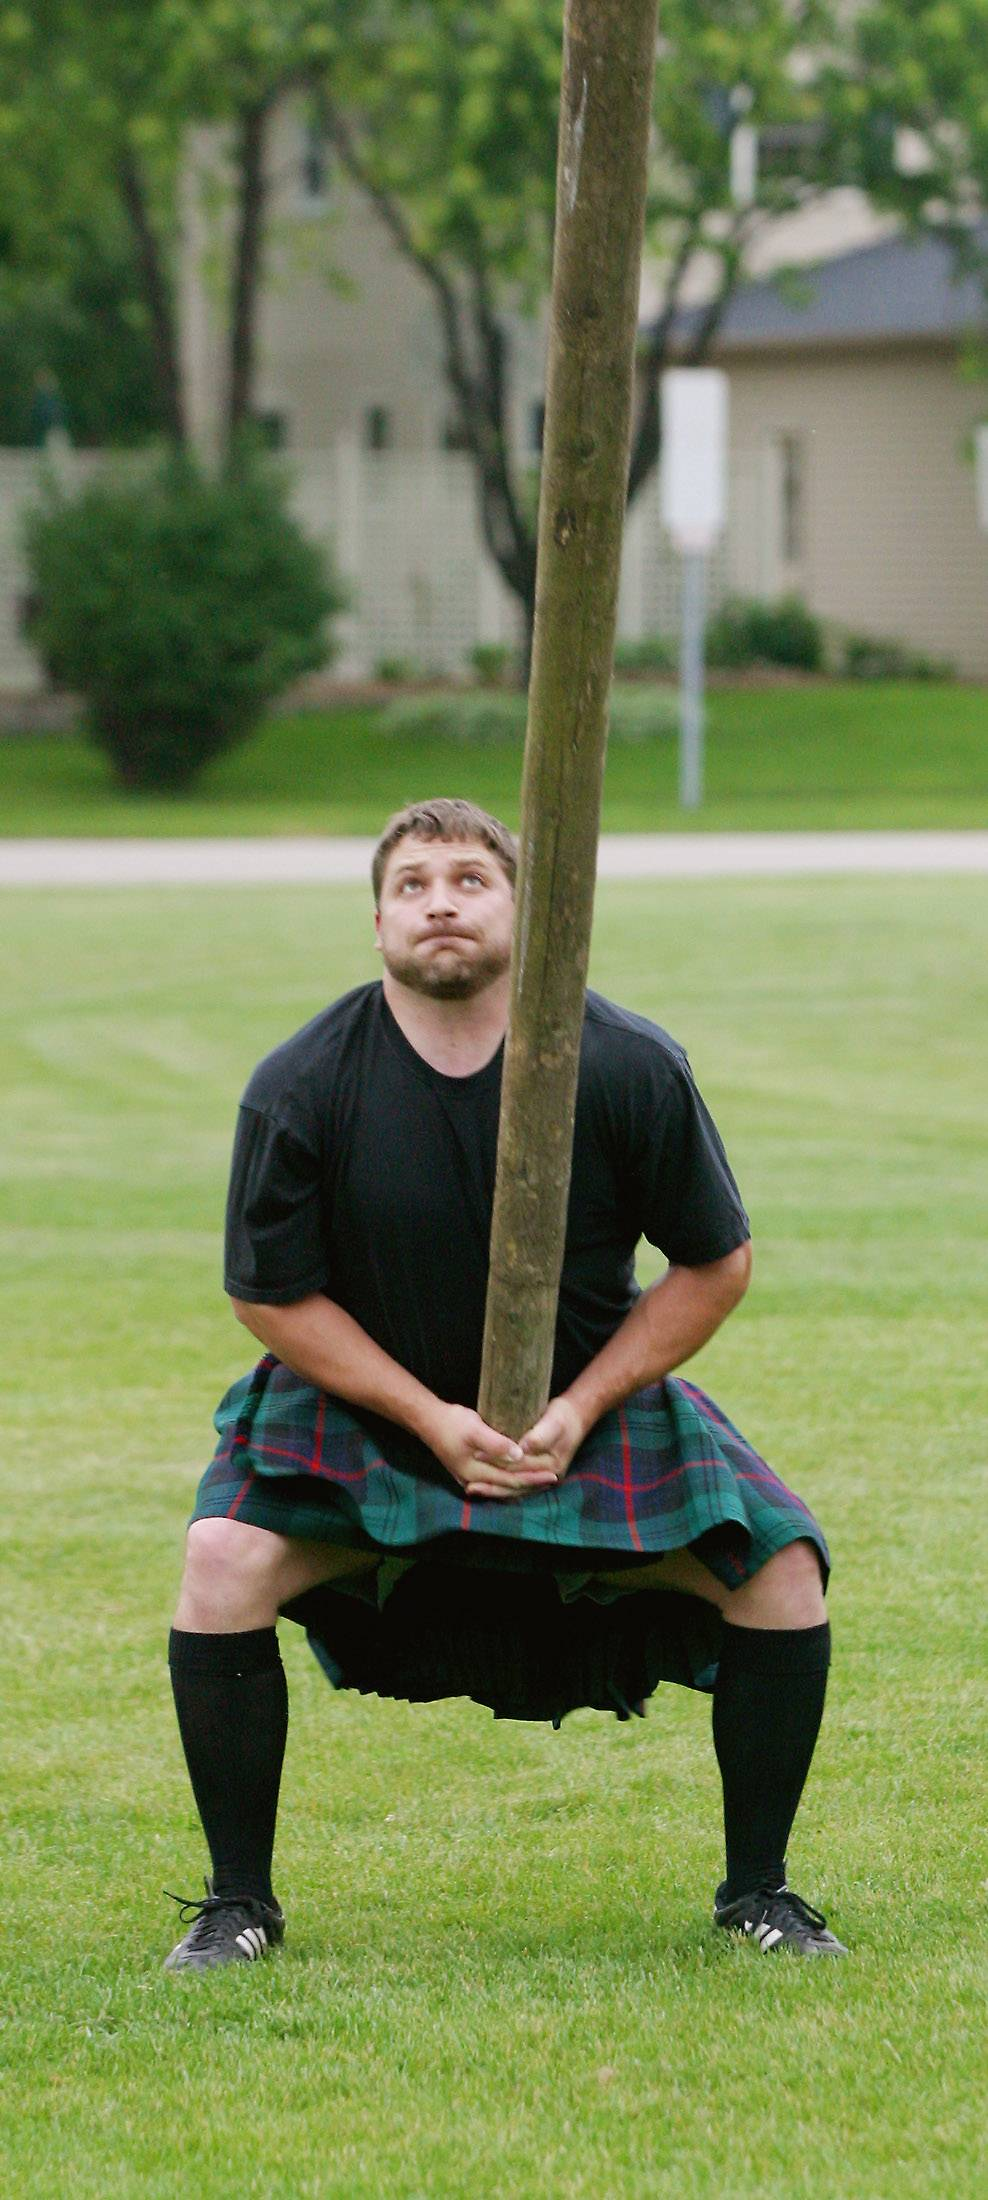 The Scottish Festival and Highland Games returns to Itasca this weekend.